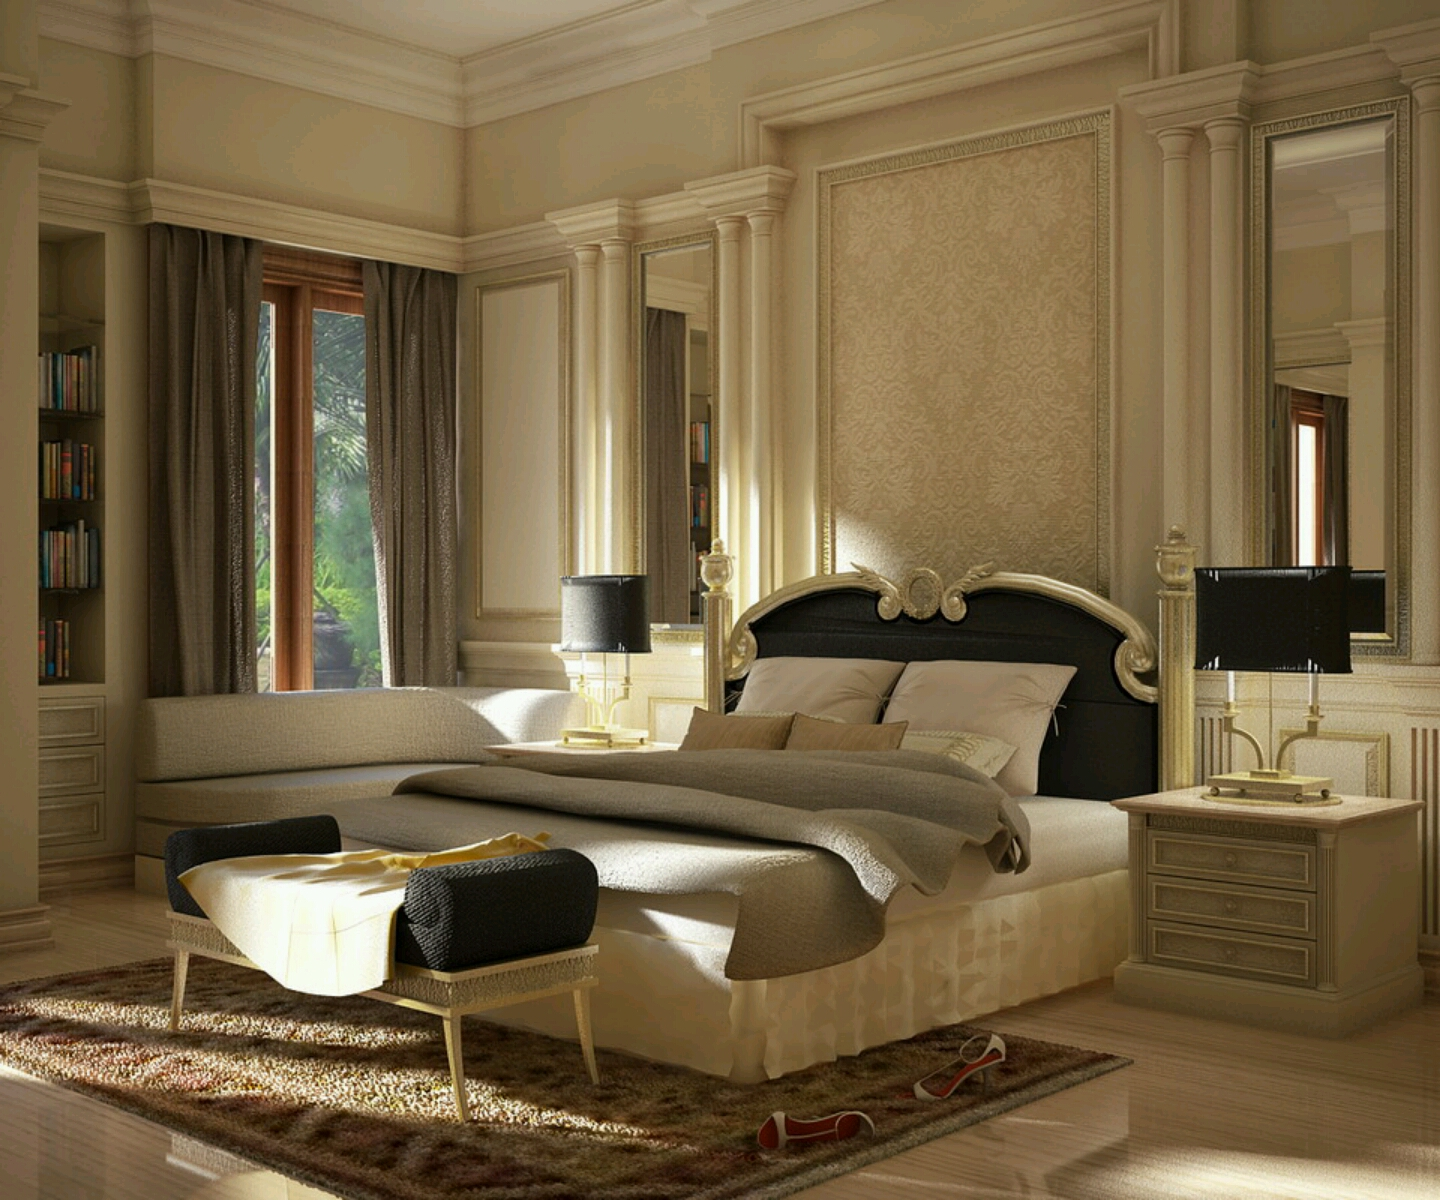 Modern luxury bedroom furniture designs ideas vintage Luxury bedroom ideas pictures